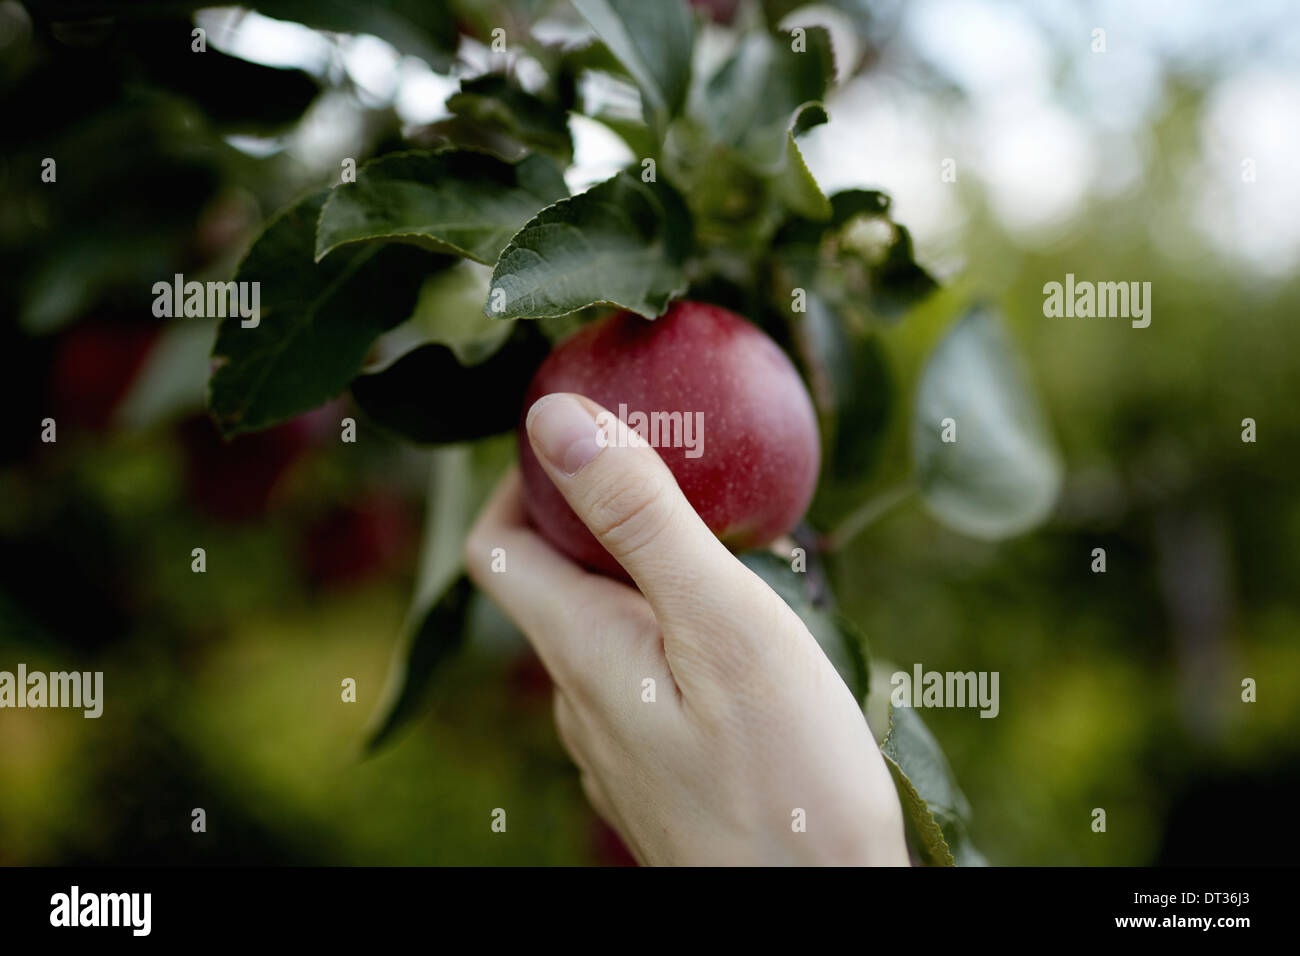 A hand reaching up into the boughs of a fruit tree picking a red ripe apple - Stock Image